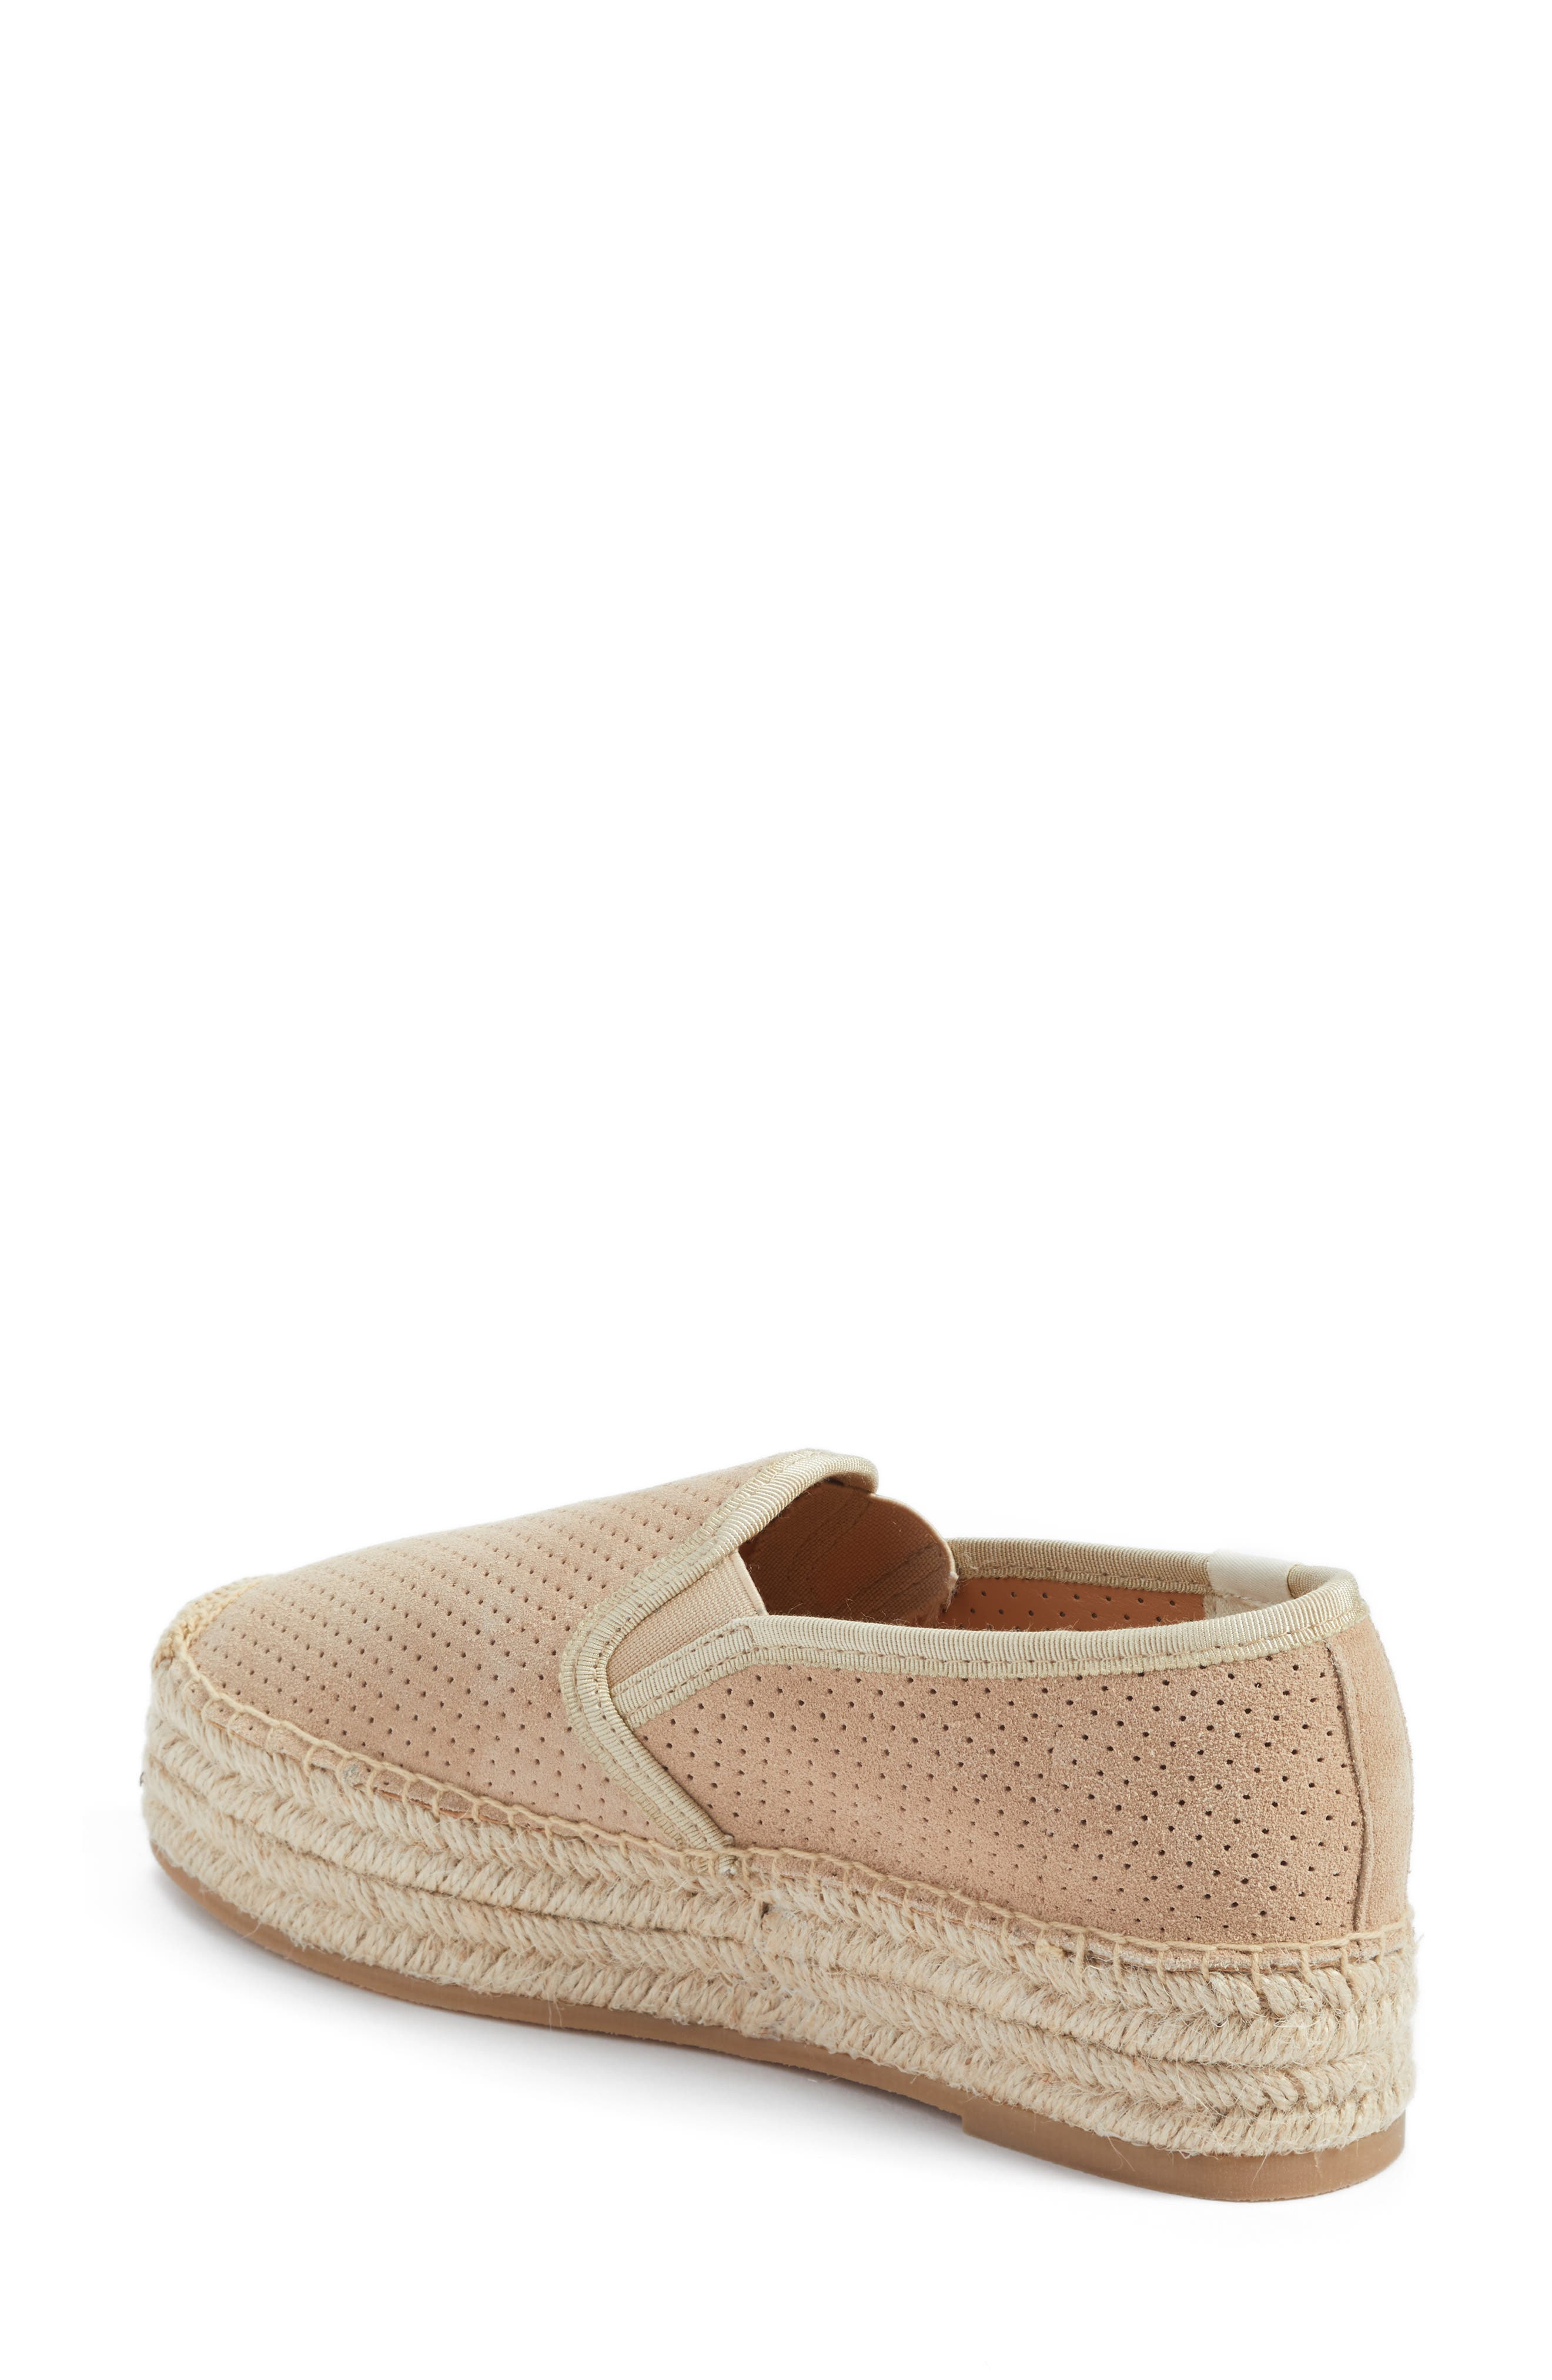 Women s Soludos Slip-On Sale   Nordstrom 163efac1270a